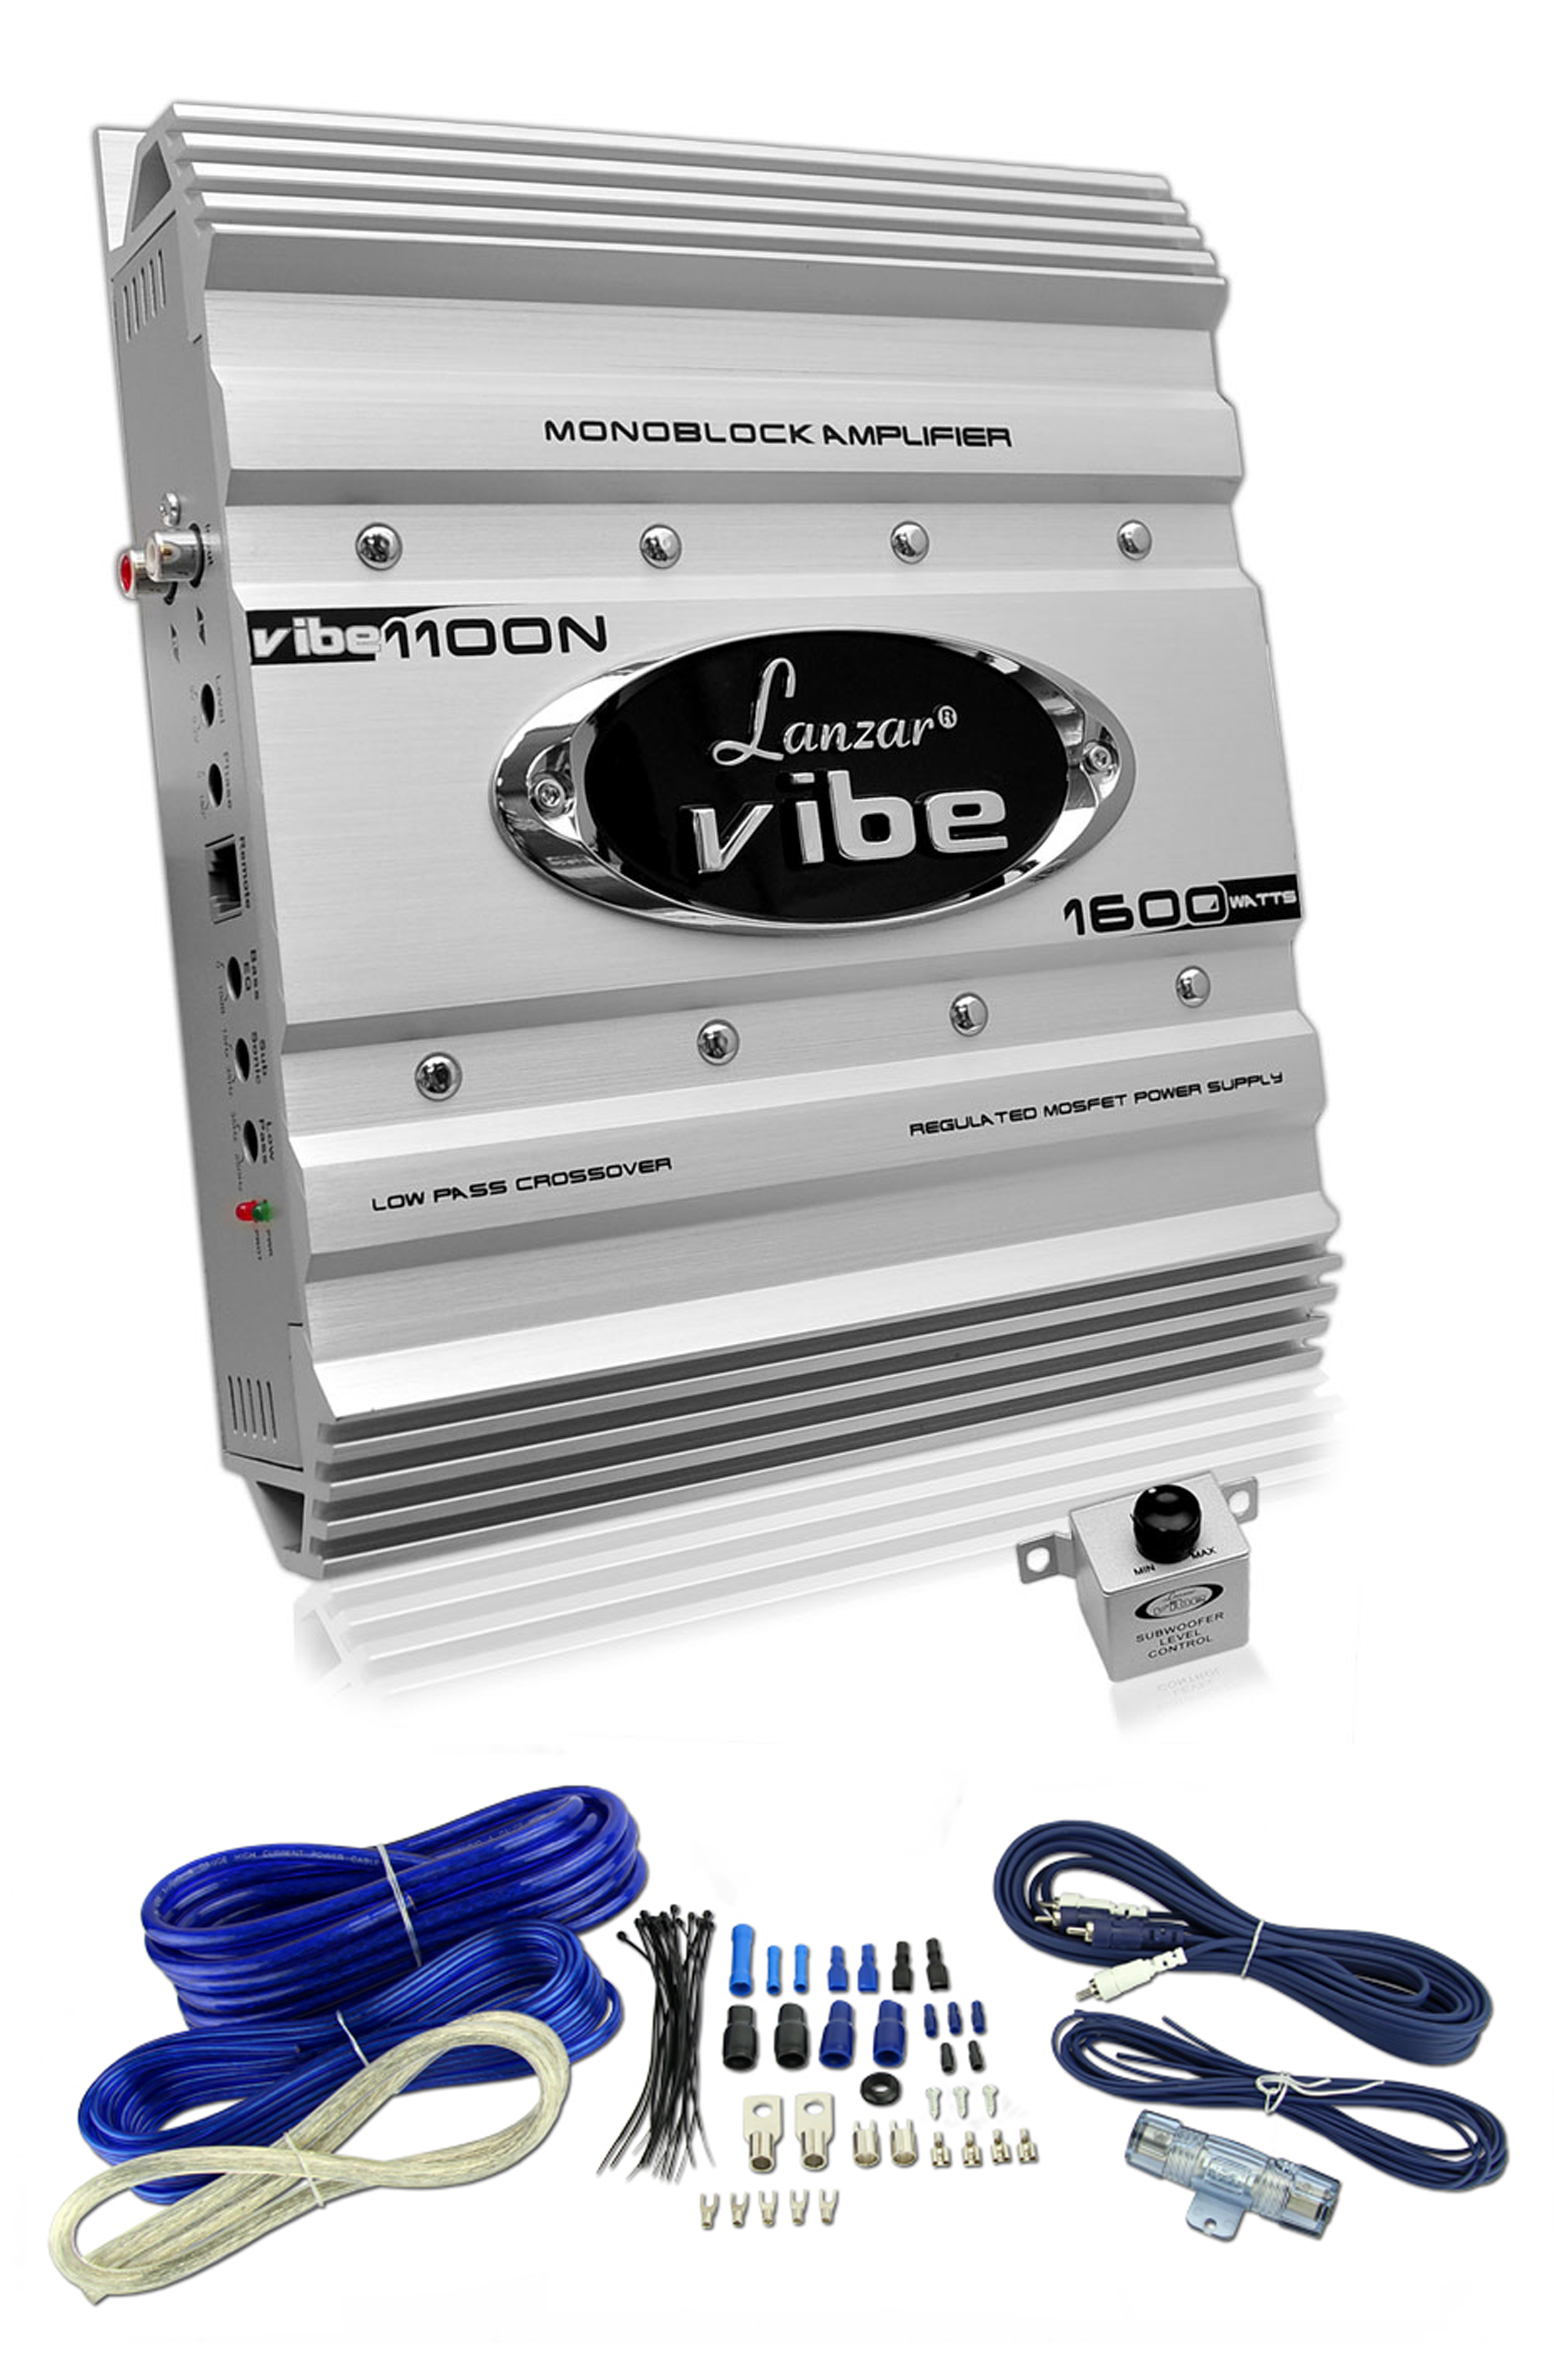 new lanzar vibe1100n 1600 watt mono 1 channel car audio amplifier lanzar amp 1400 1 ch lanzar amp wiring [ 1554 x 2358 Pixel ]